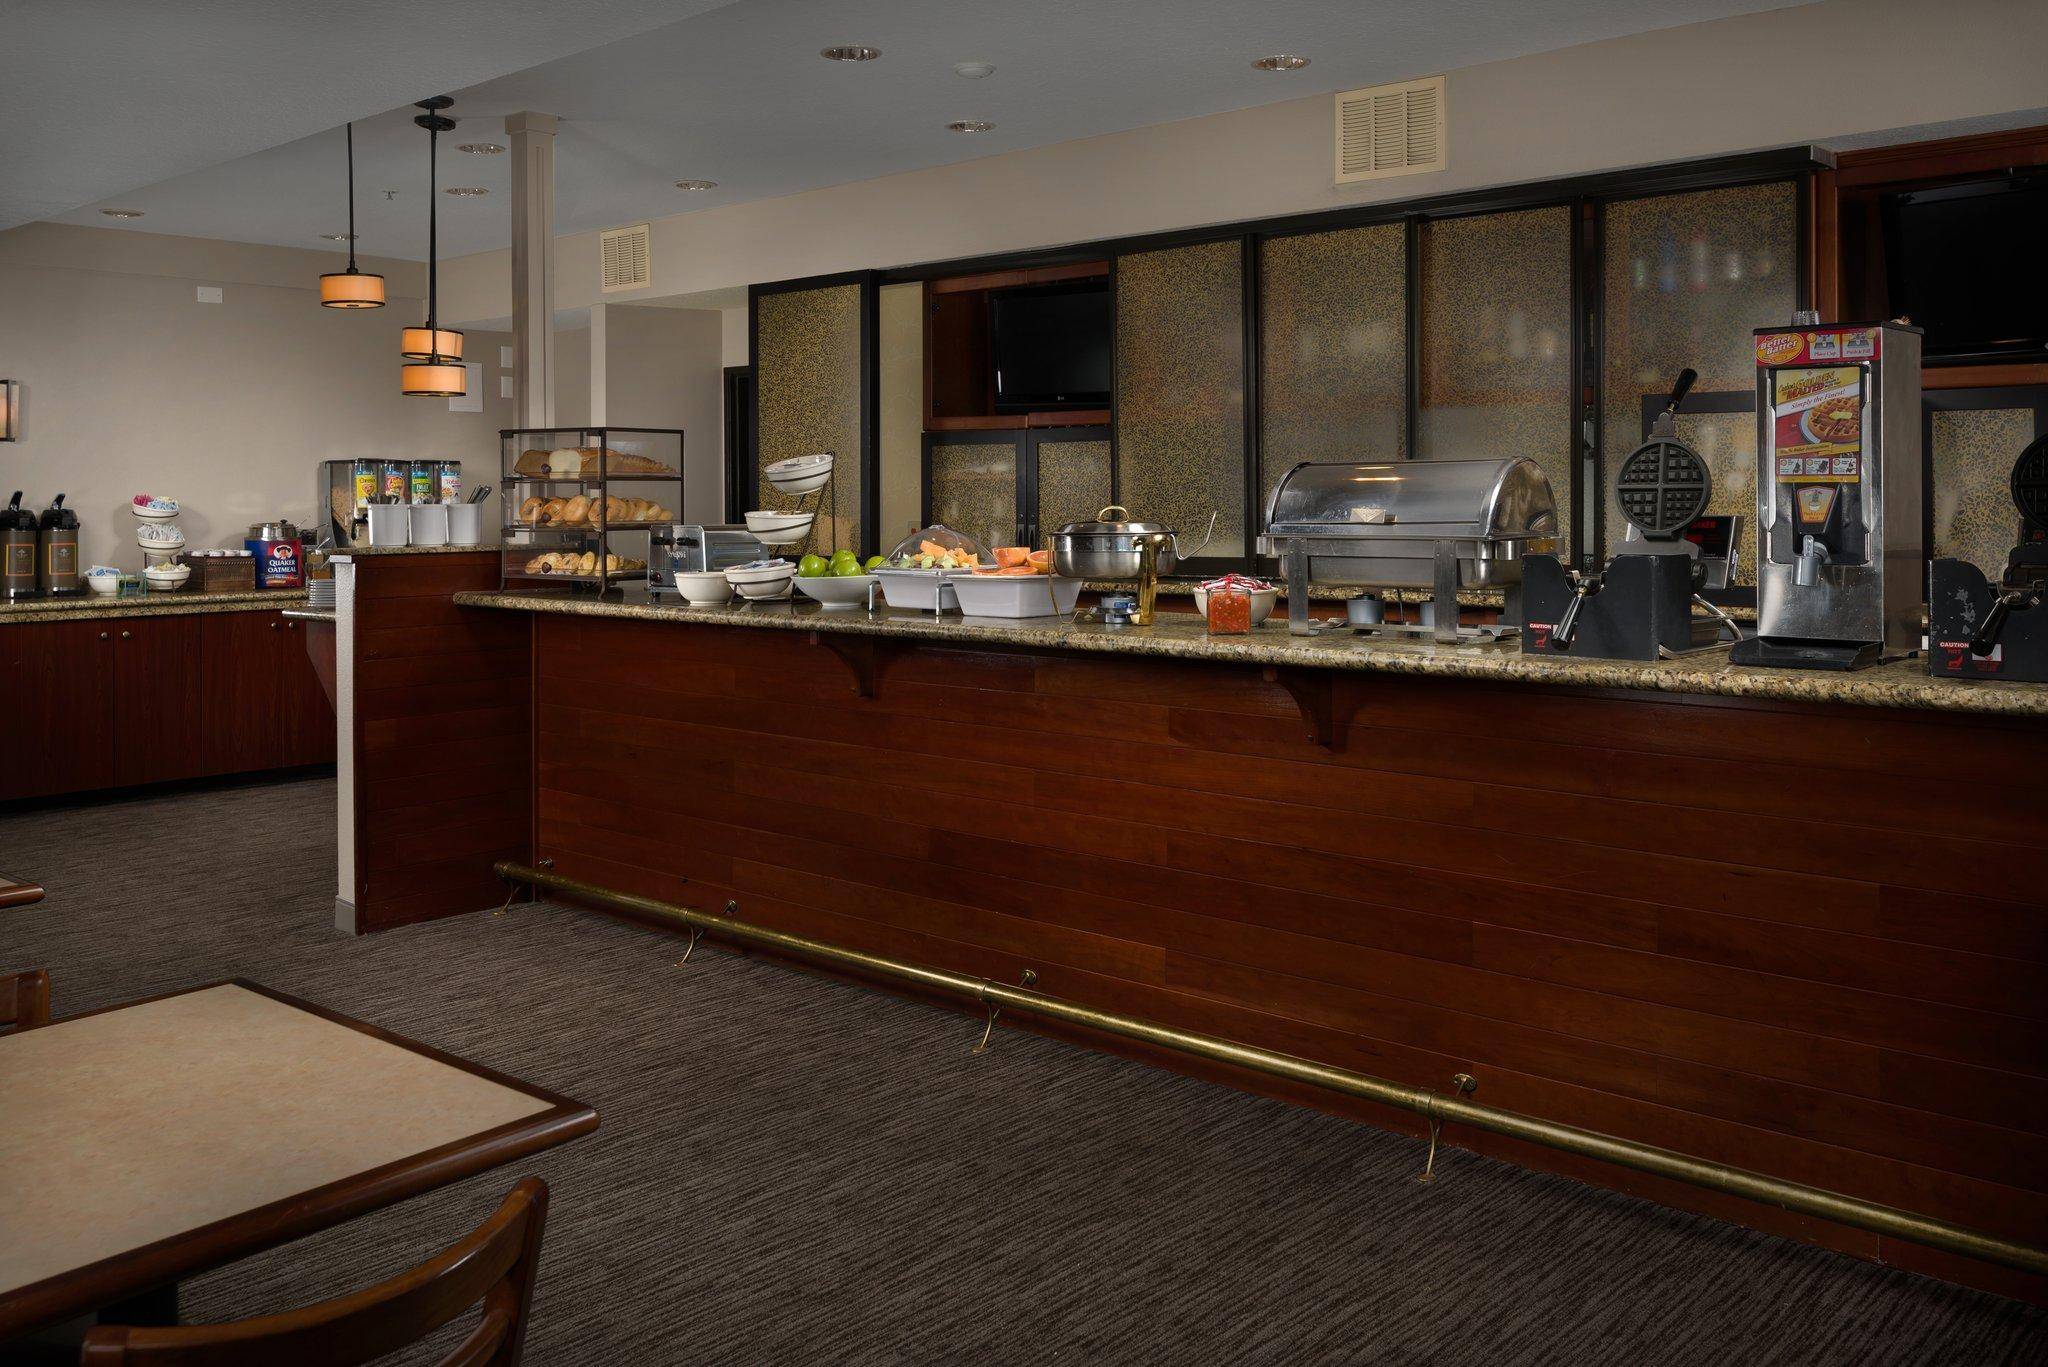 Country Inn & Suites by Radisson, Portland International Airport, OR Discount